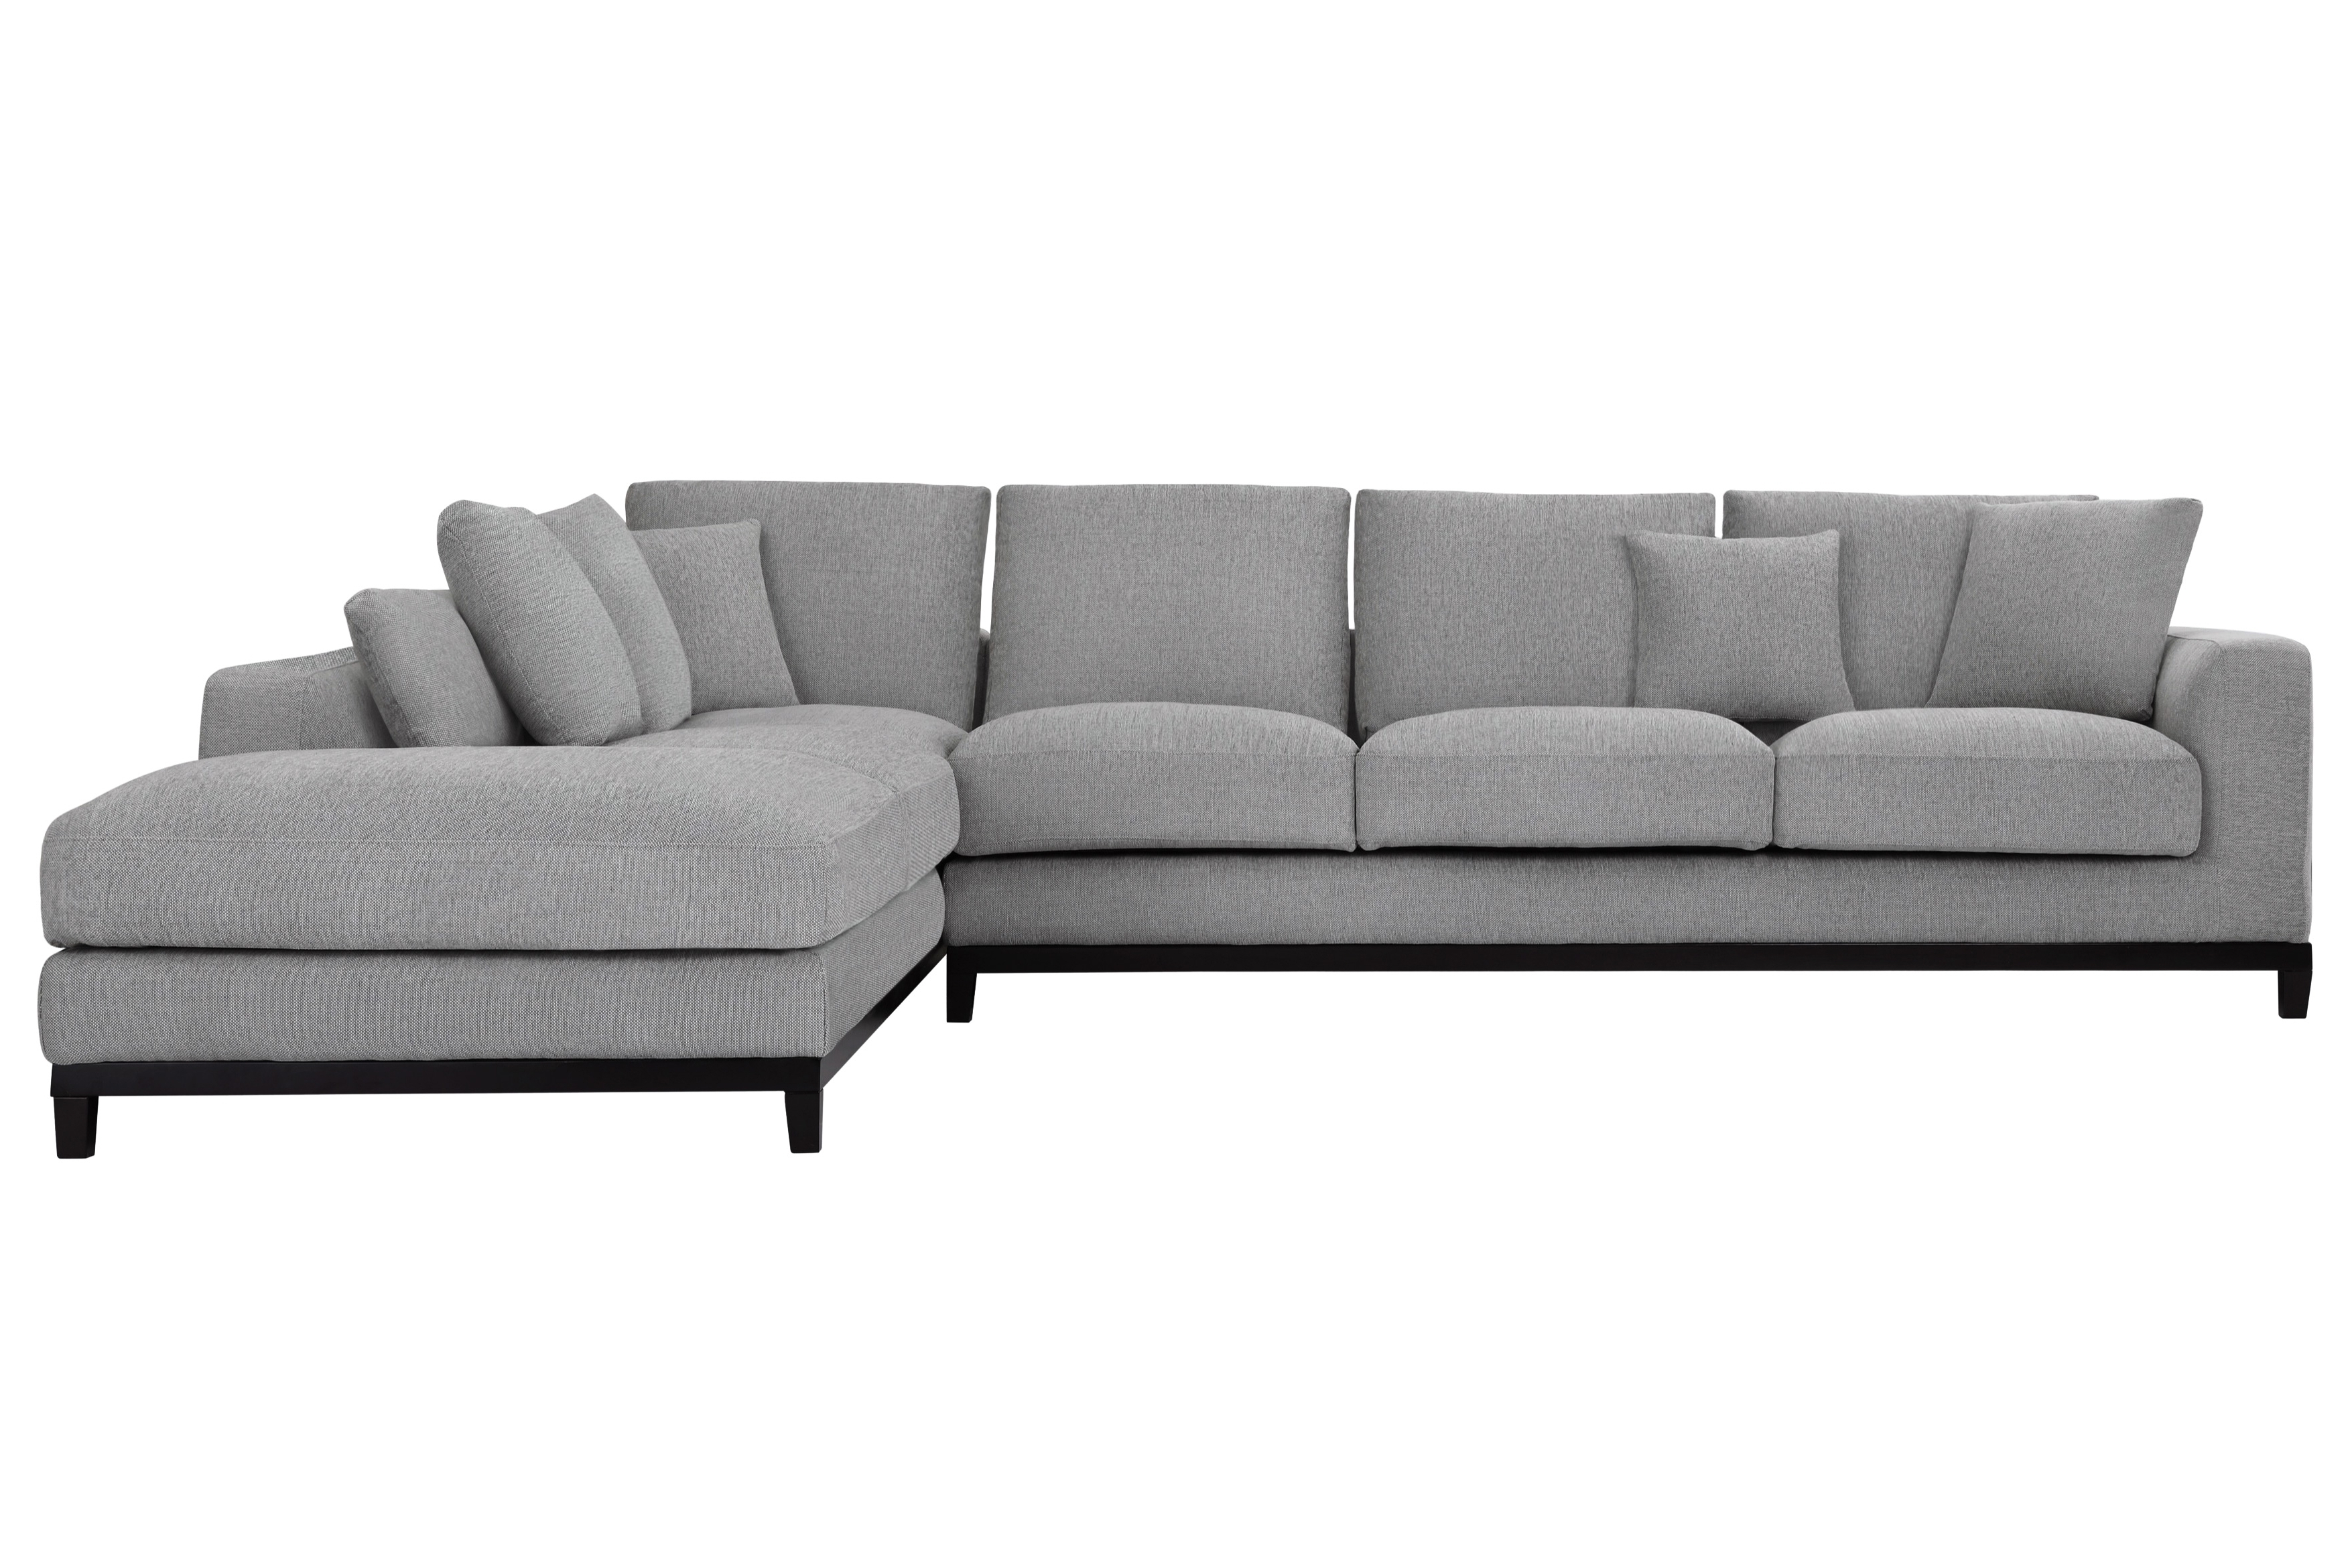 Light Gray Left Sectional Sofa Upholstered Article Burrard Divani With Regard To Most Up To Date Quebec Sectional Sofas (View 4 of 20)